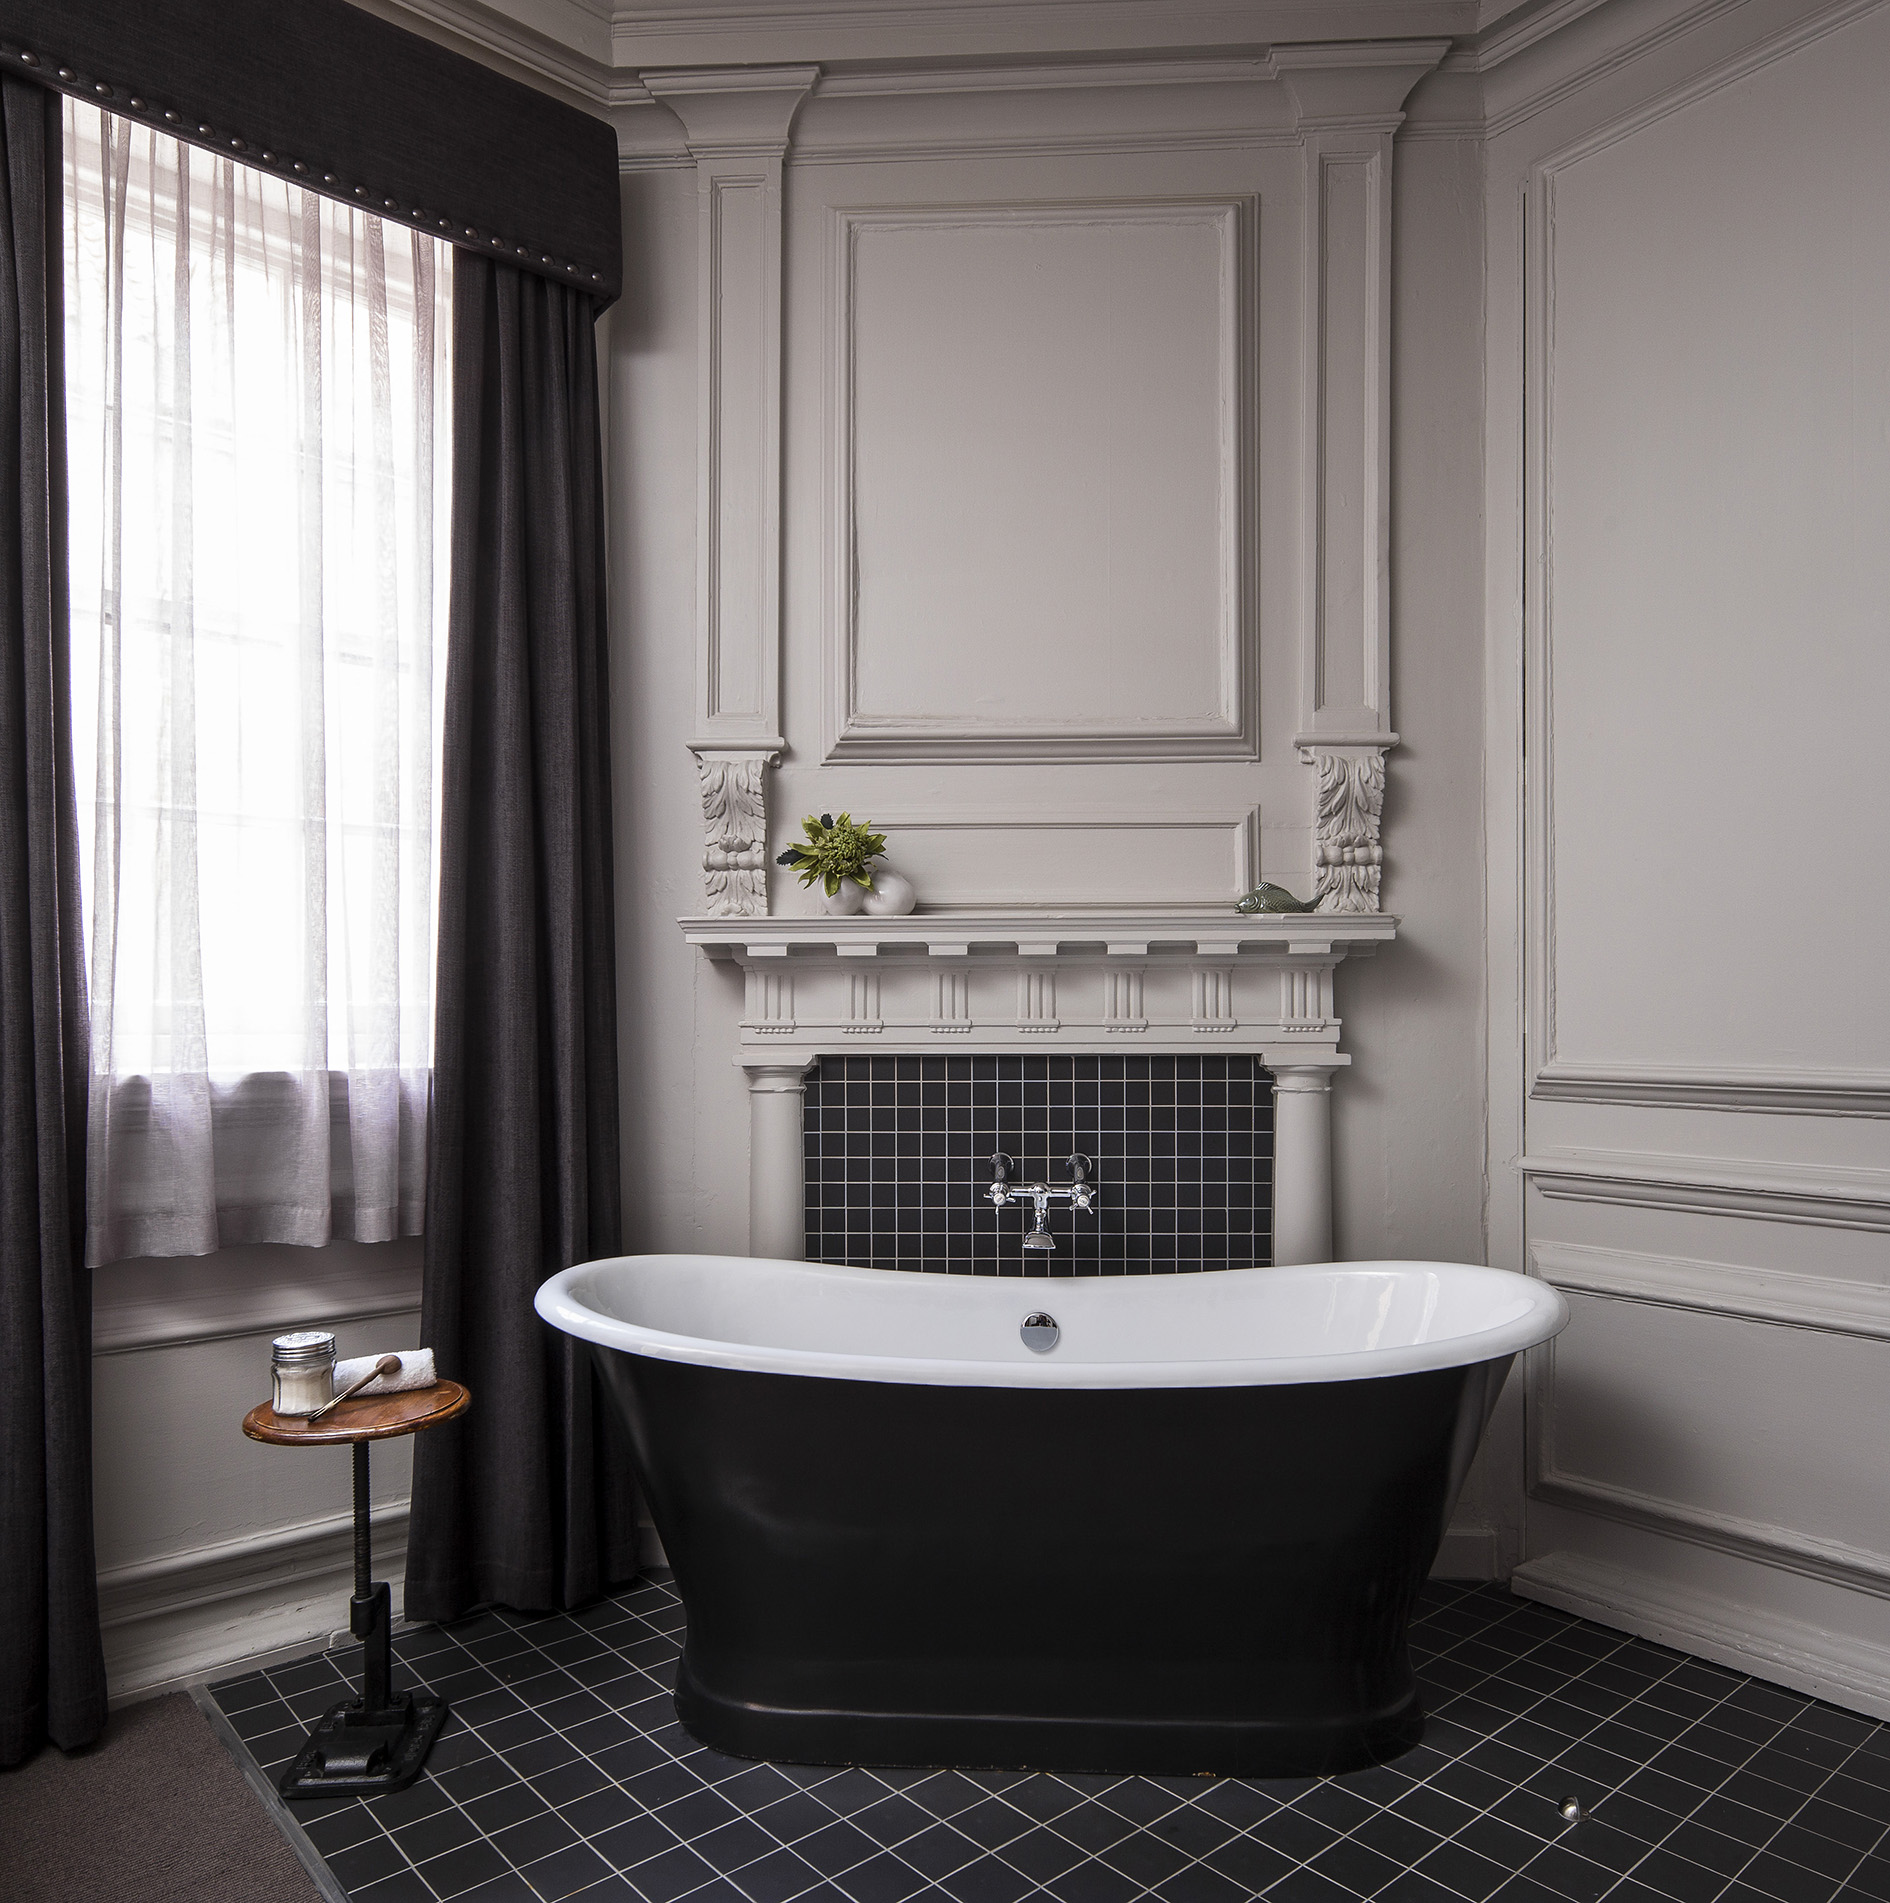 Free Standing Bath in Luxury Room (Please note not all rooms have this feature)